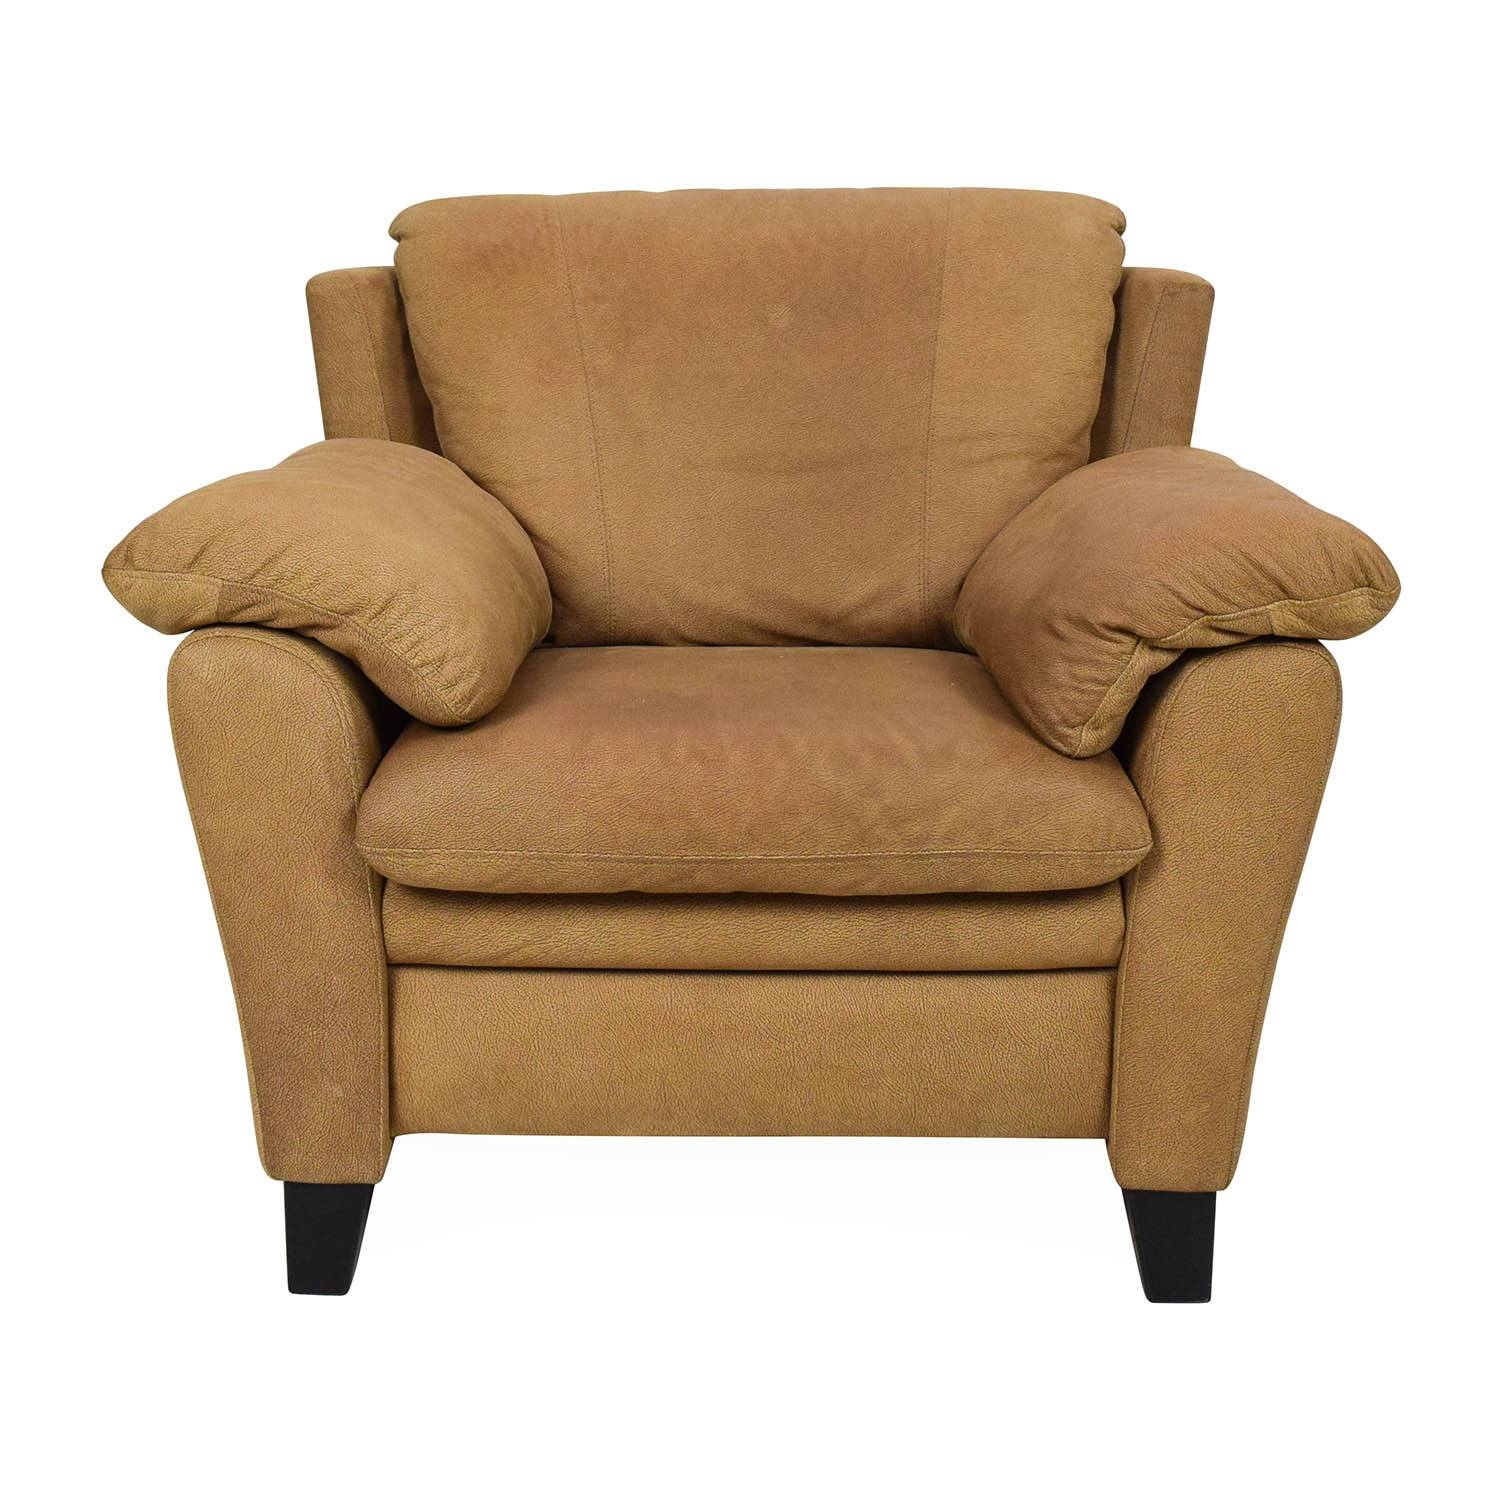 77% Off - W.schillig W. Schillig Sofa Chair / Chairs for Sofa With Chairs (Image 1 of 15)